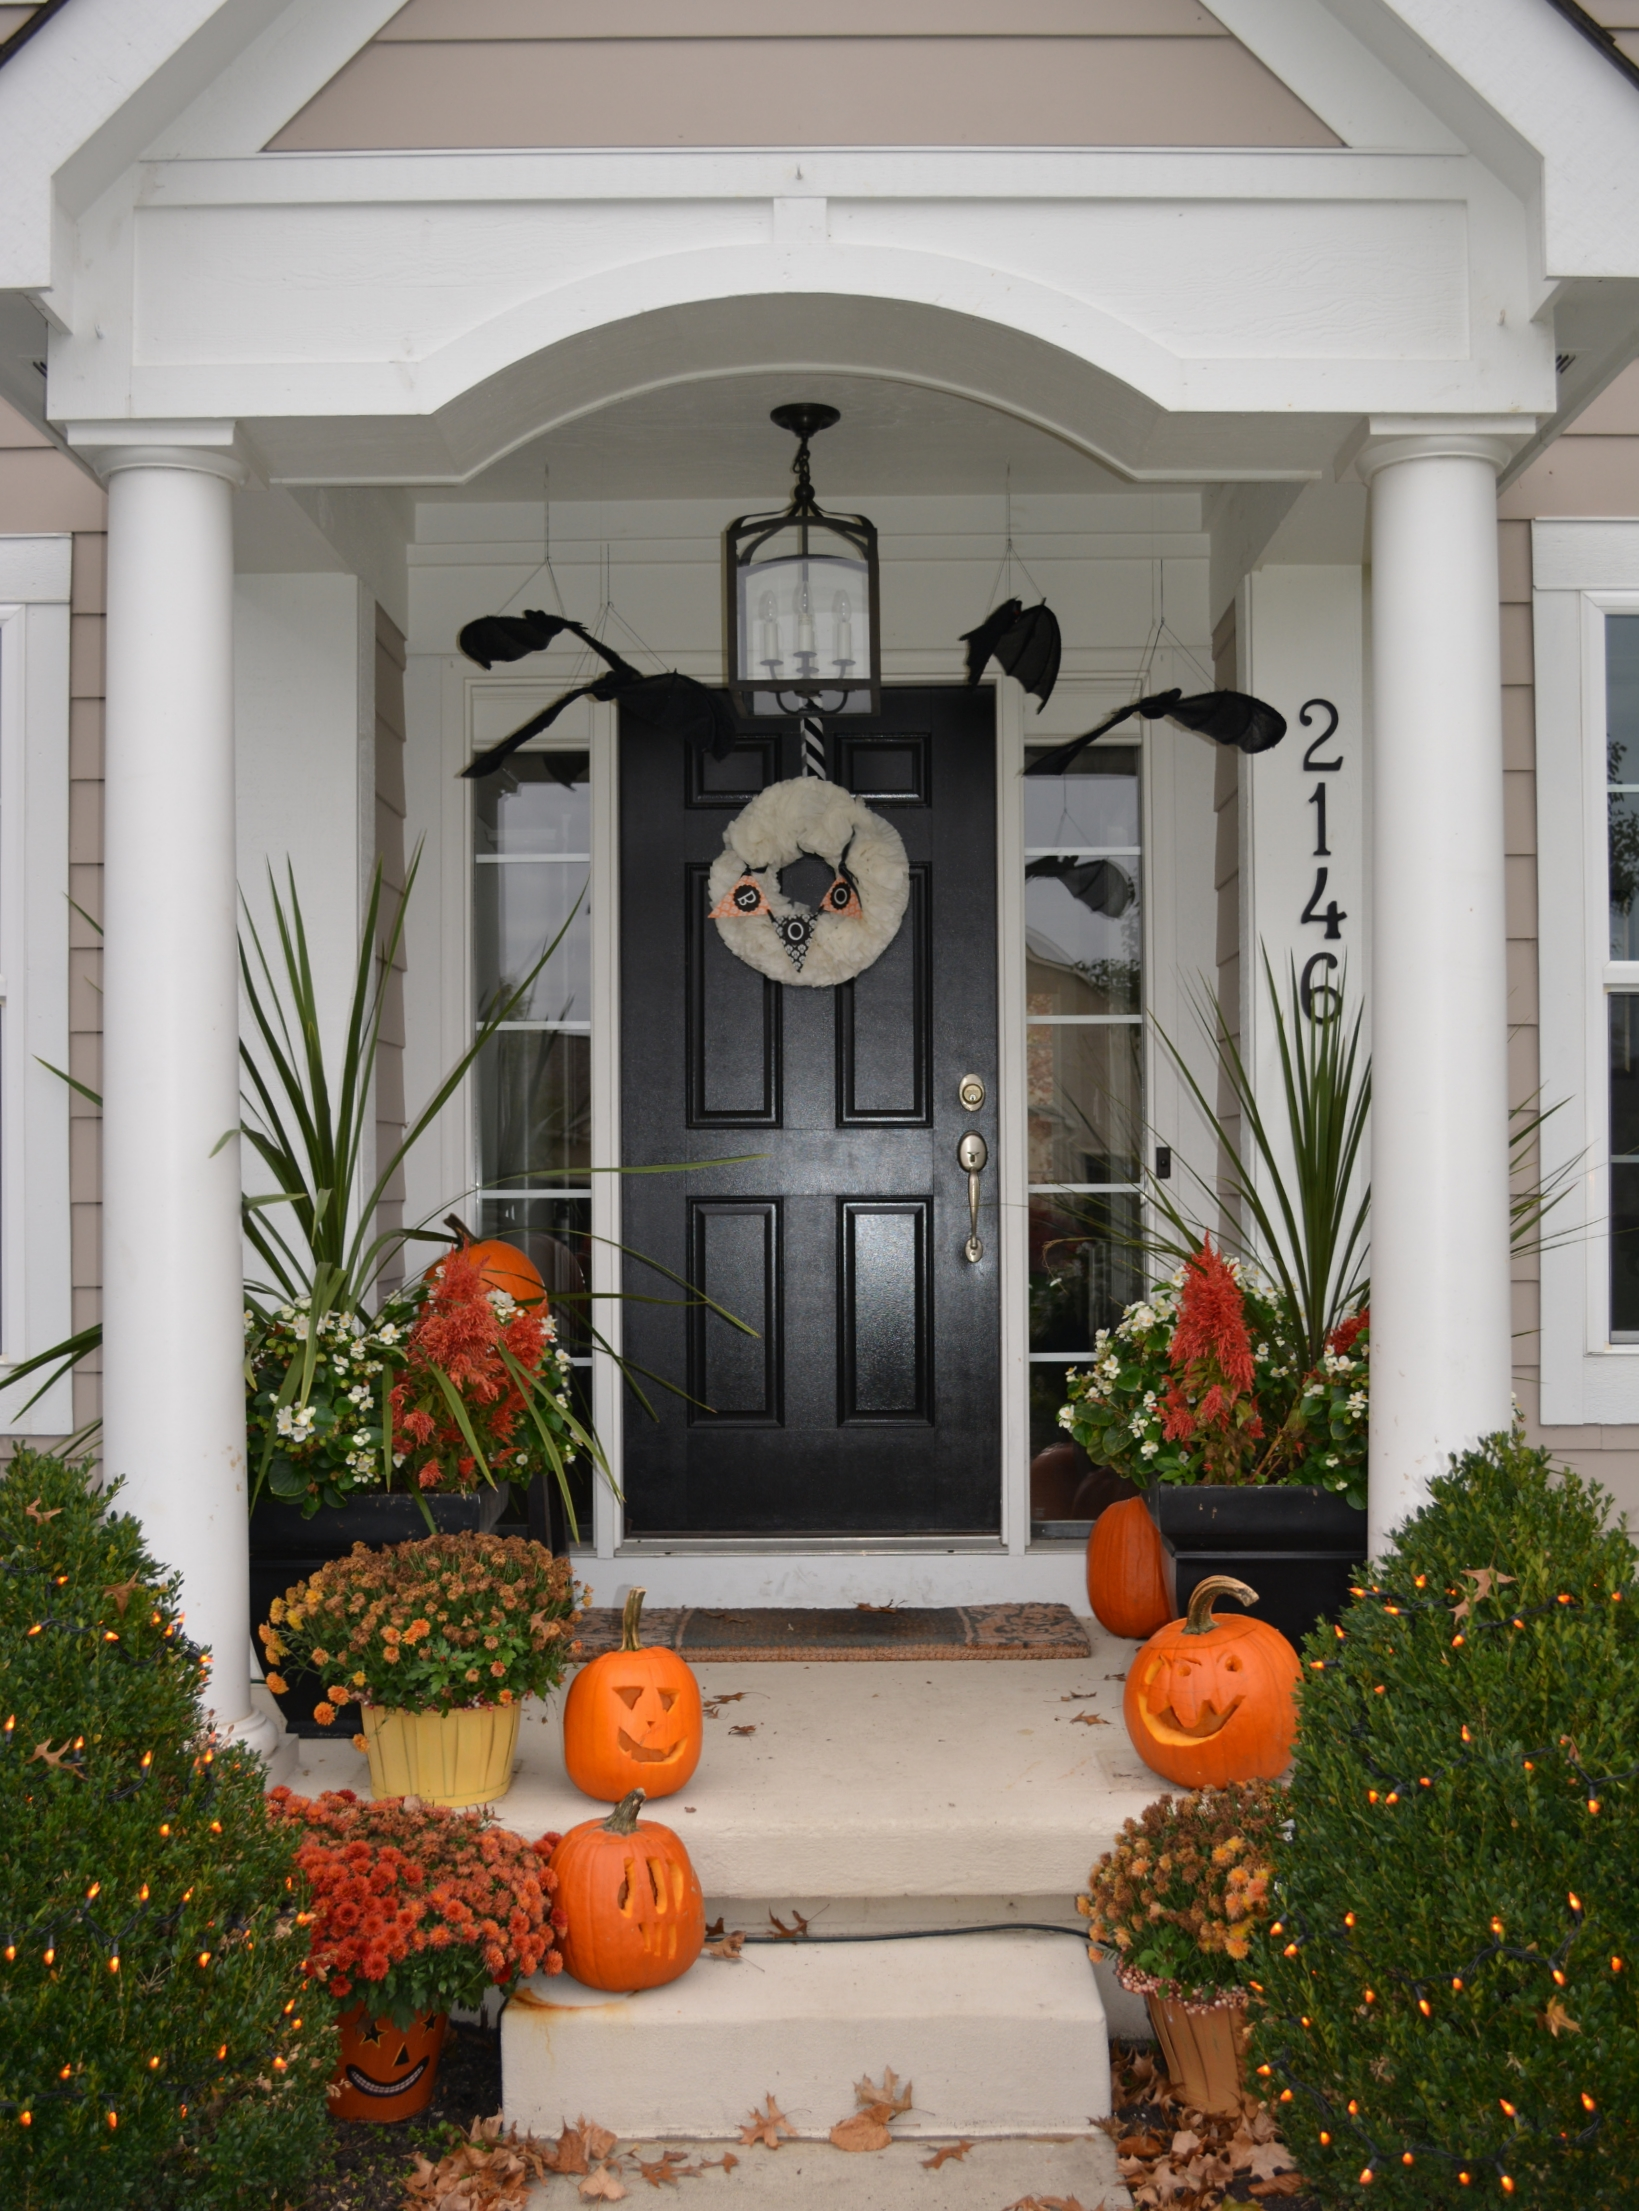 Our home ~ Decorated for Halloween last year.